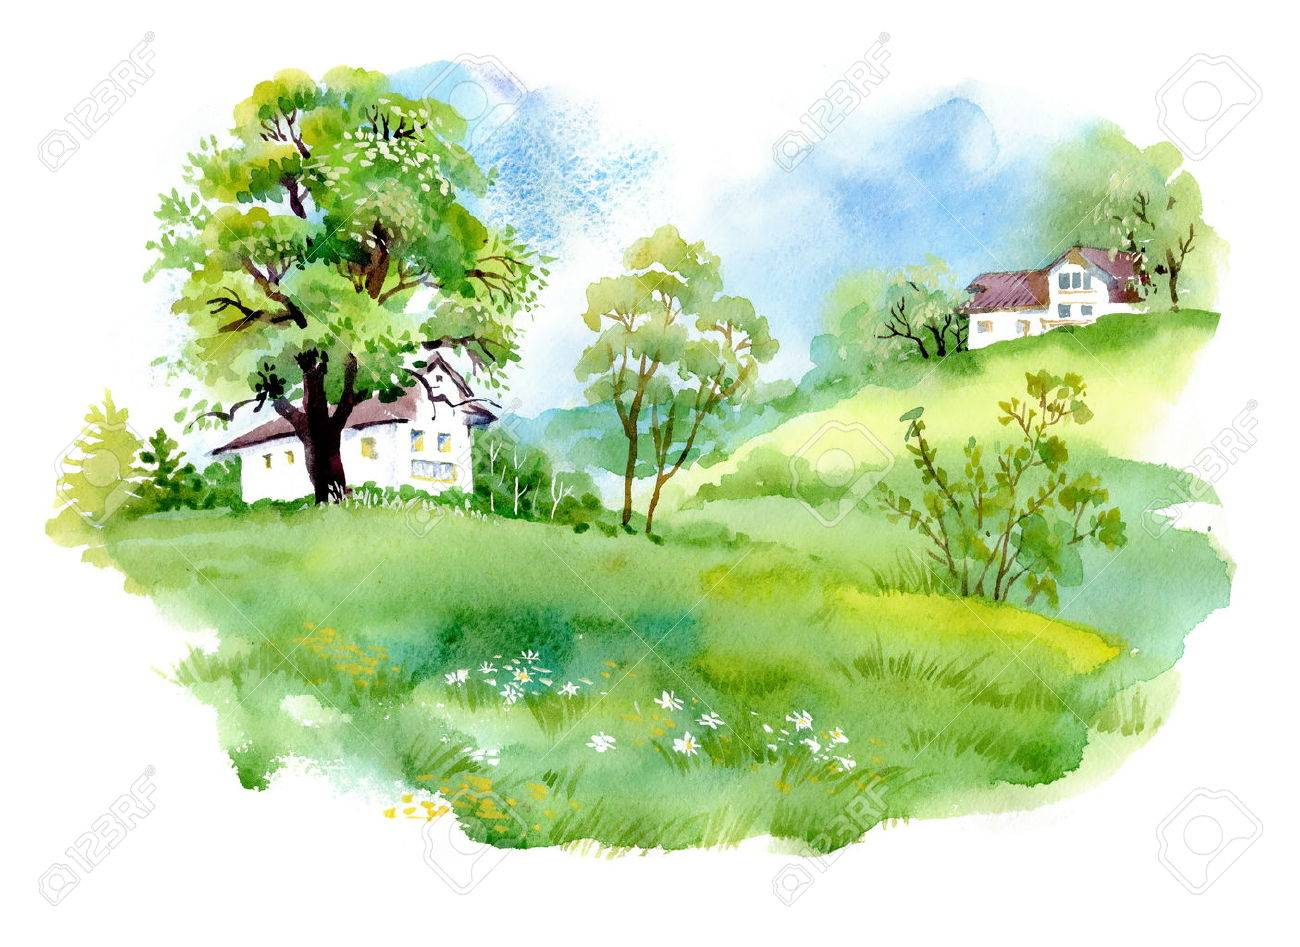 Landscape with houses, watercolor illustration - 37848746